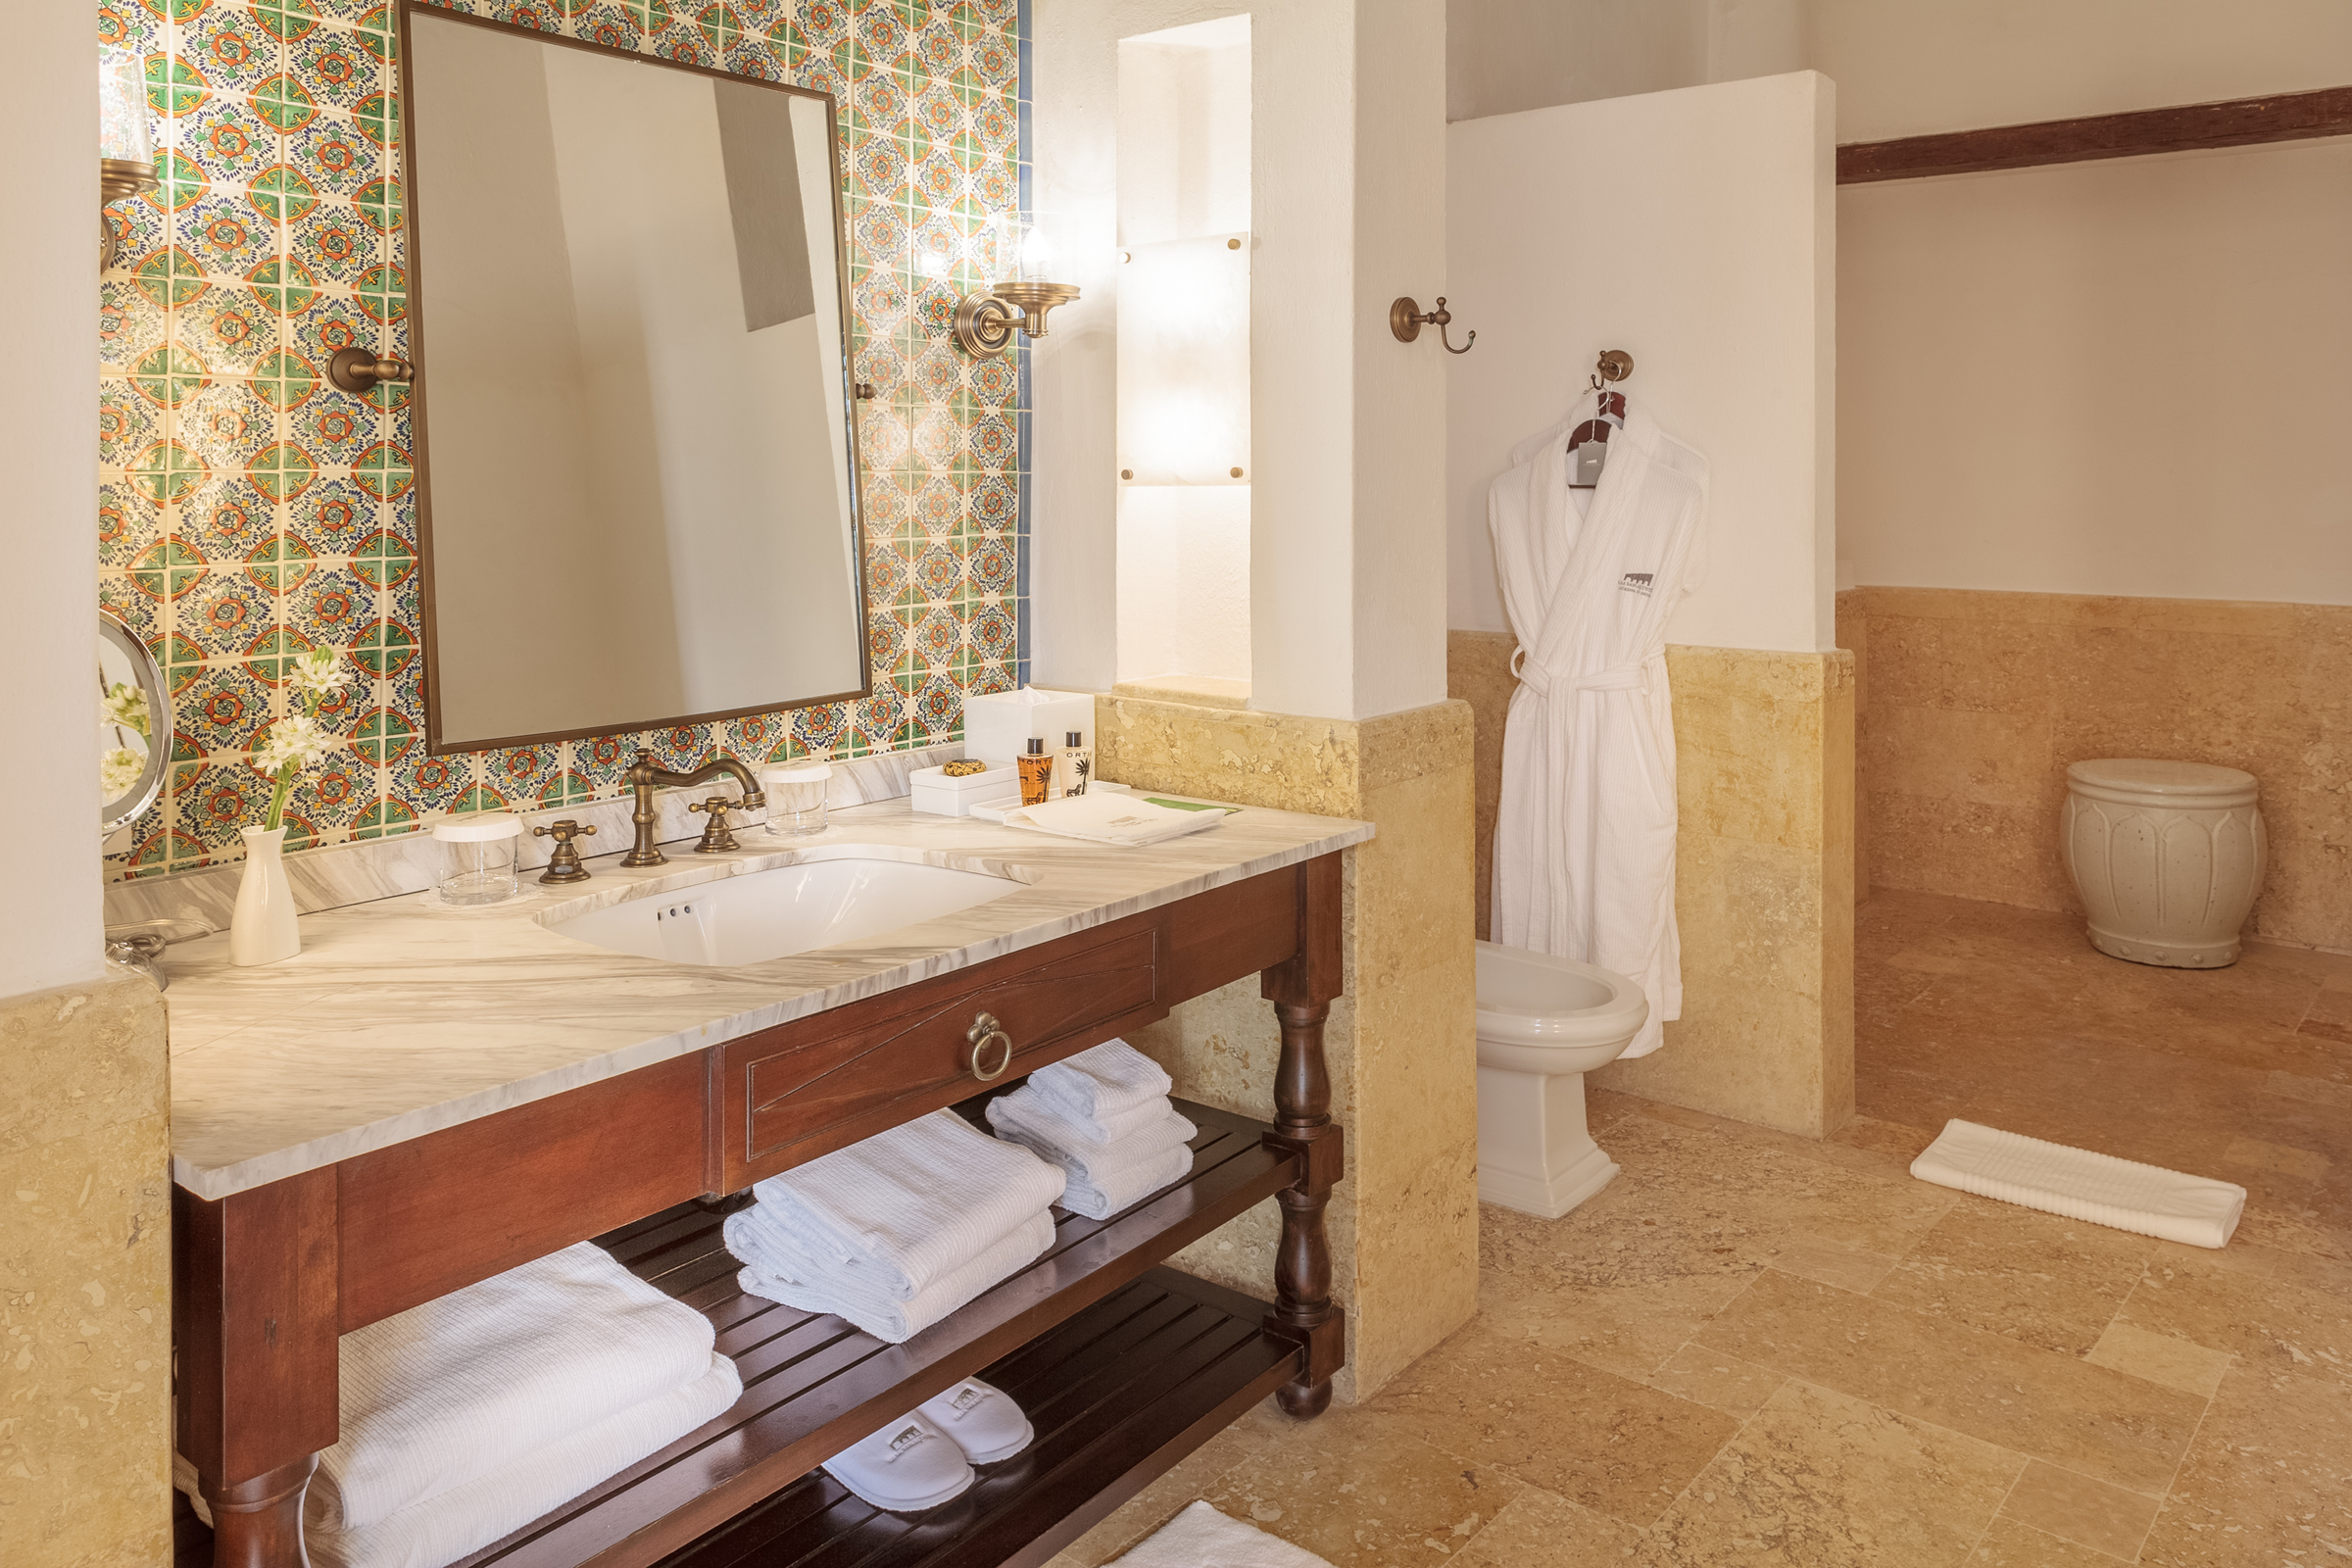 Guest Bathroom at Hotel Casa San Agustin ( photo courtesy of Hotel Casa San Agustin)